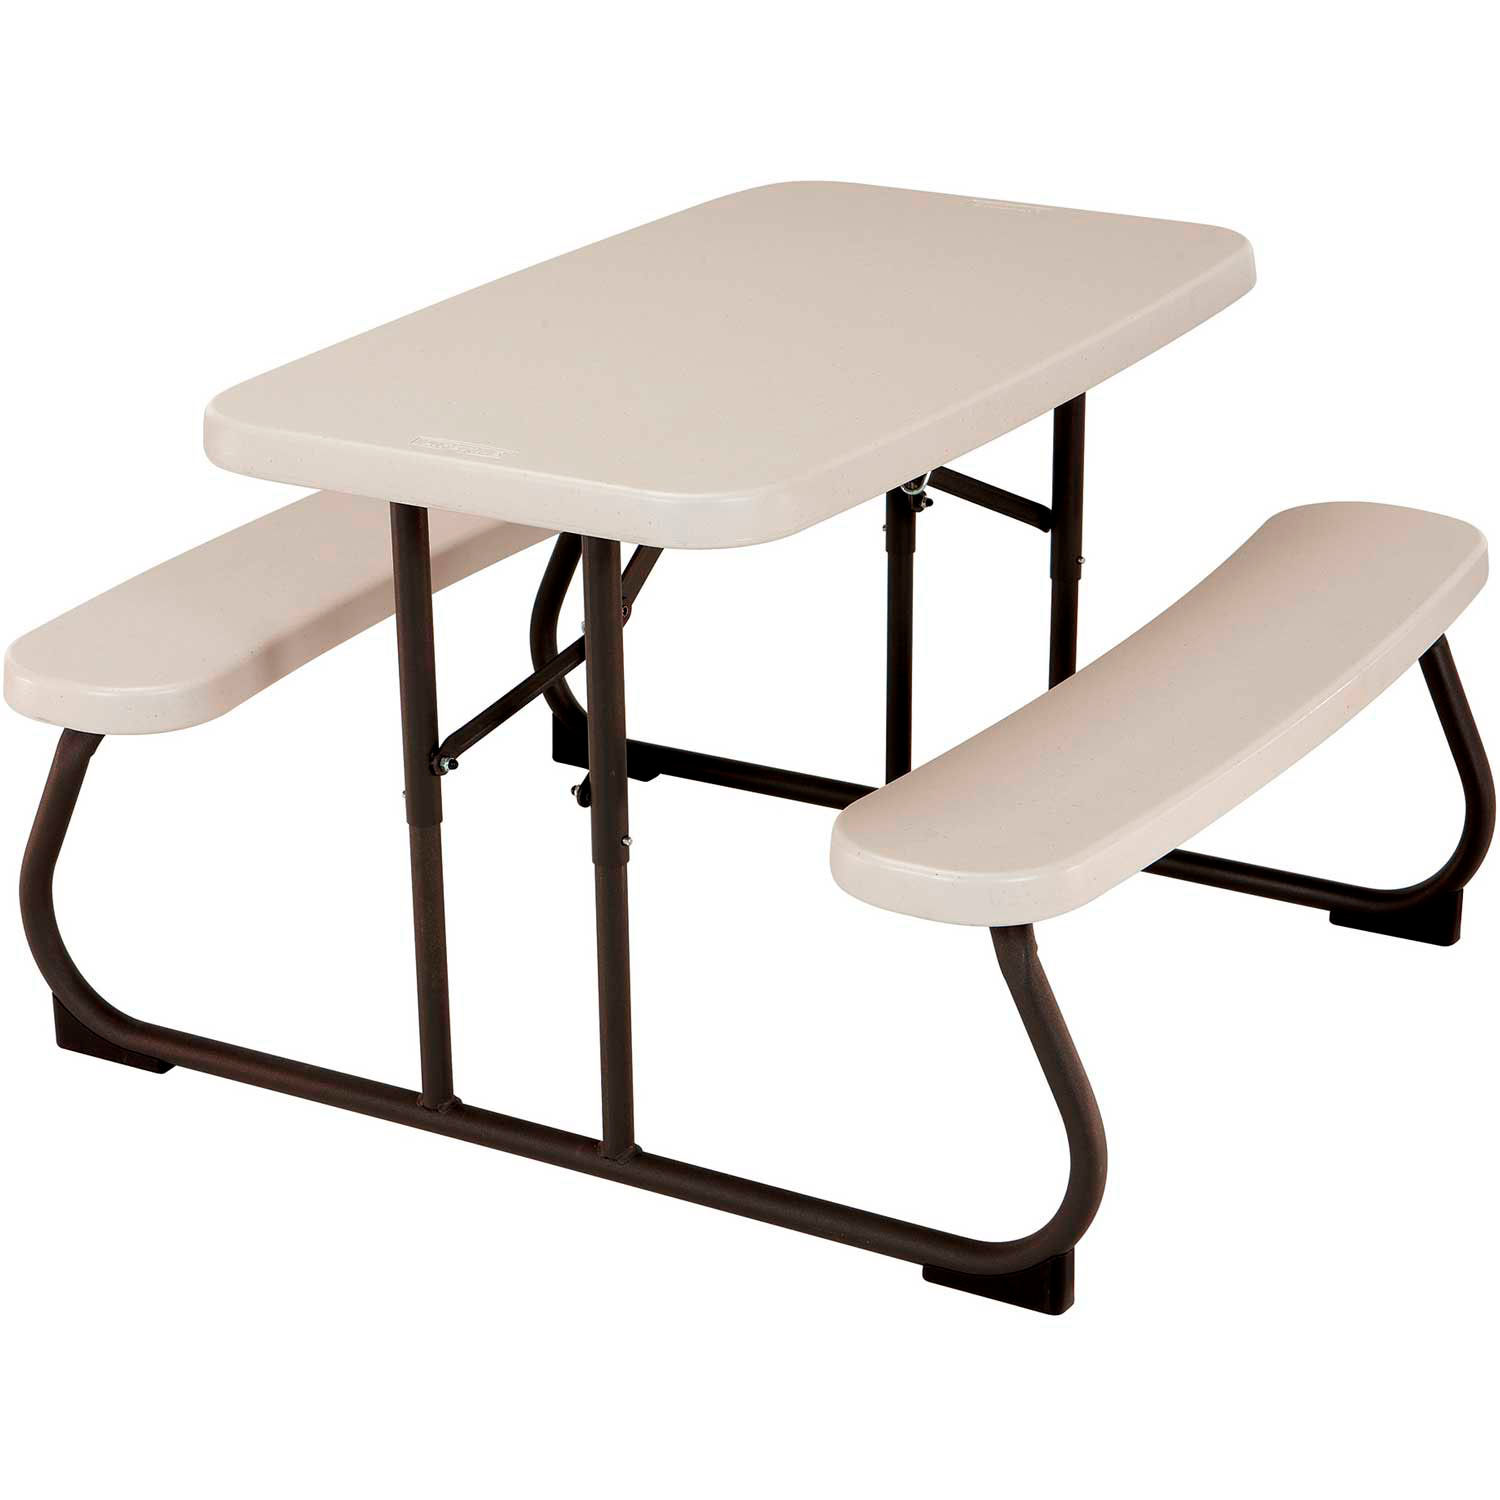 - Benches & Picnic Tables Picnic Tables - Plastic/Recycled Plastic